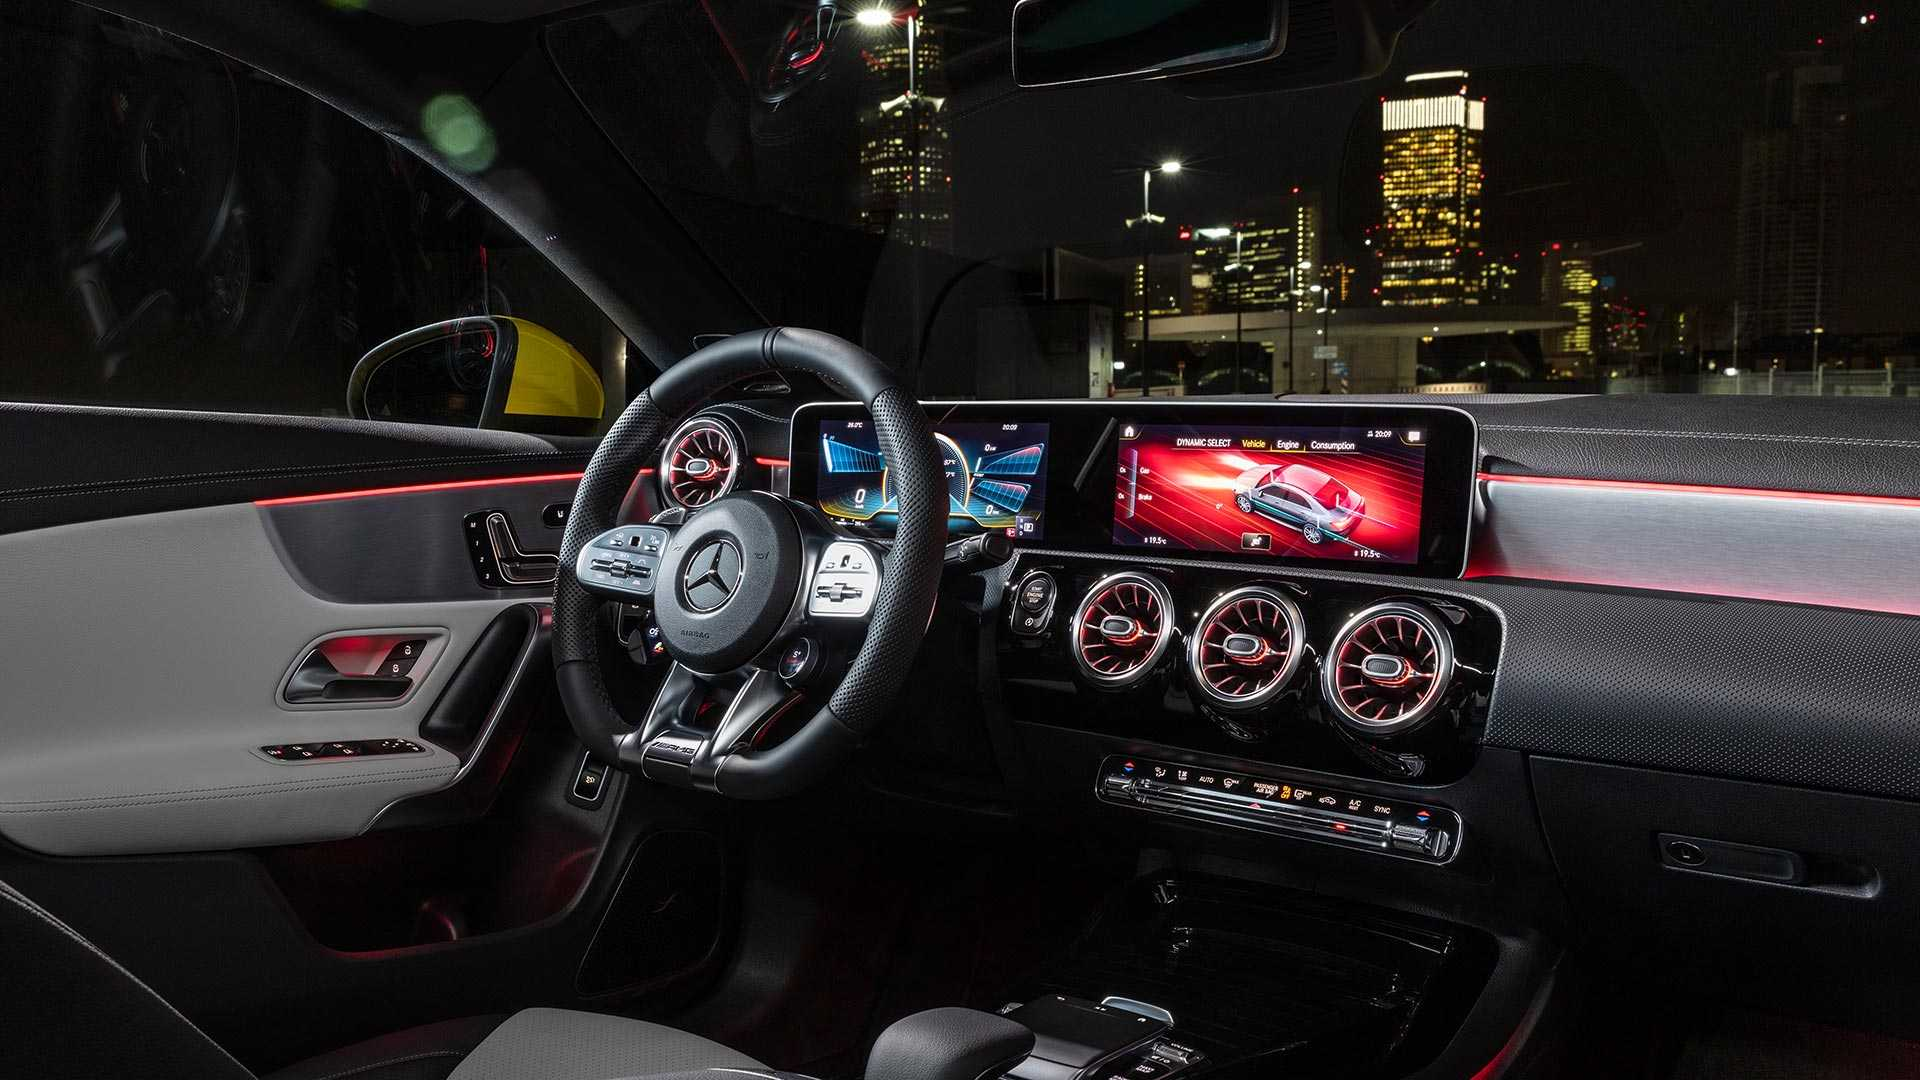 ©Mercedes-Benz CLA35 AMG Interior